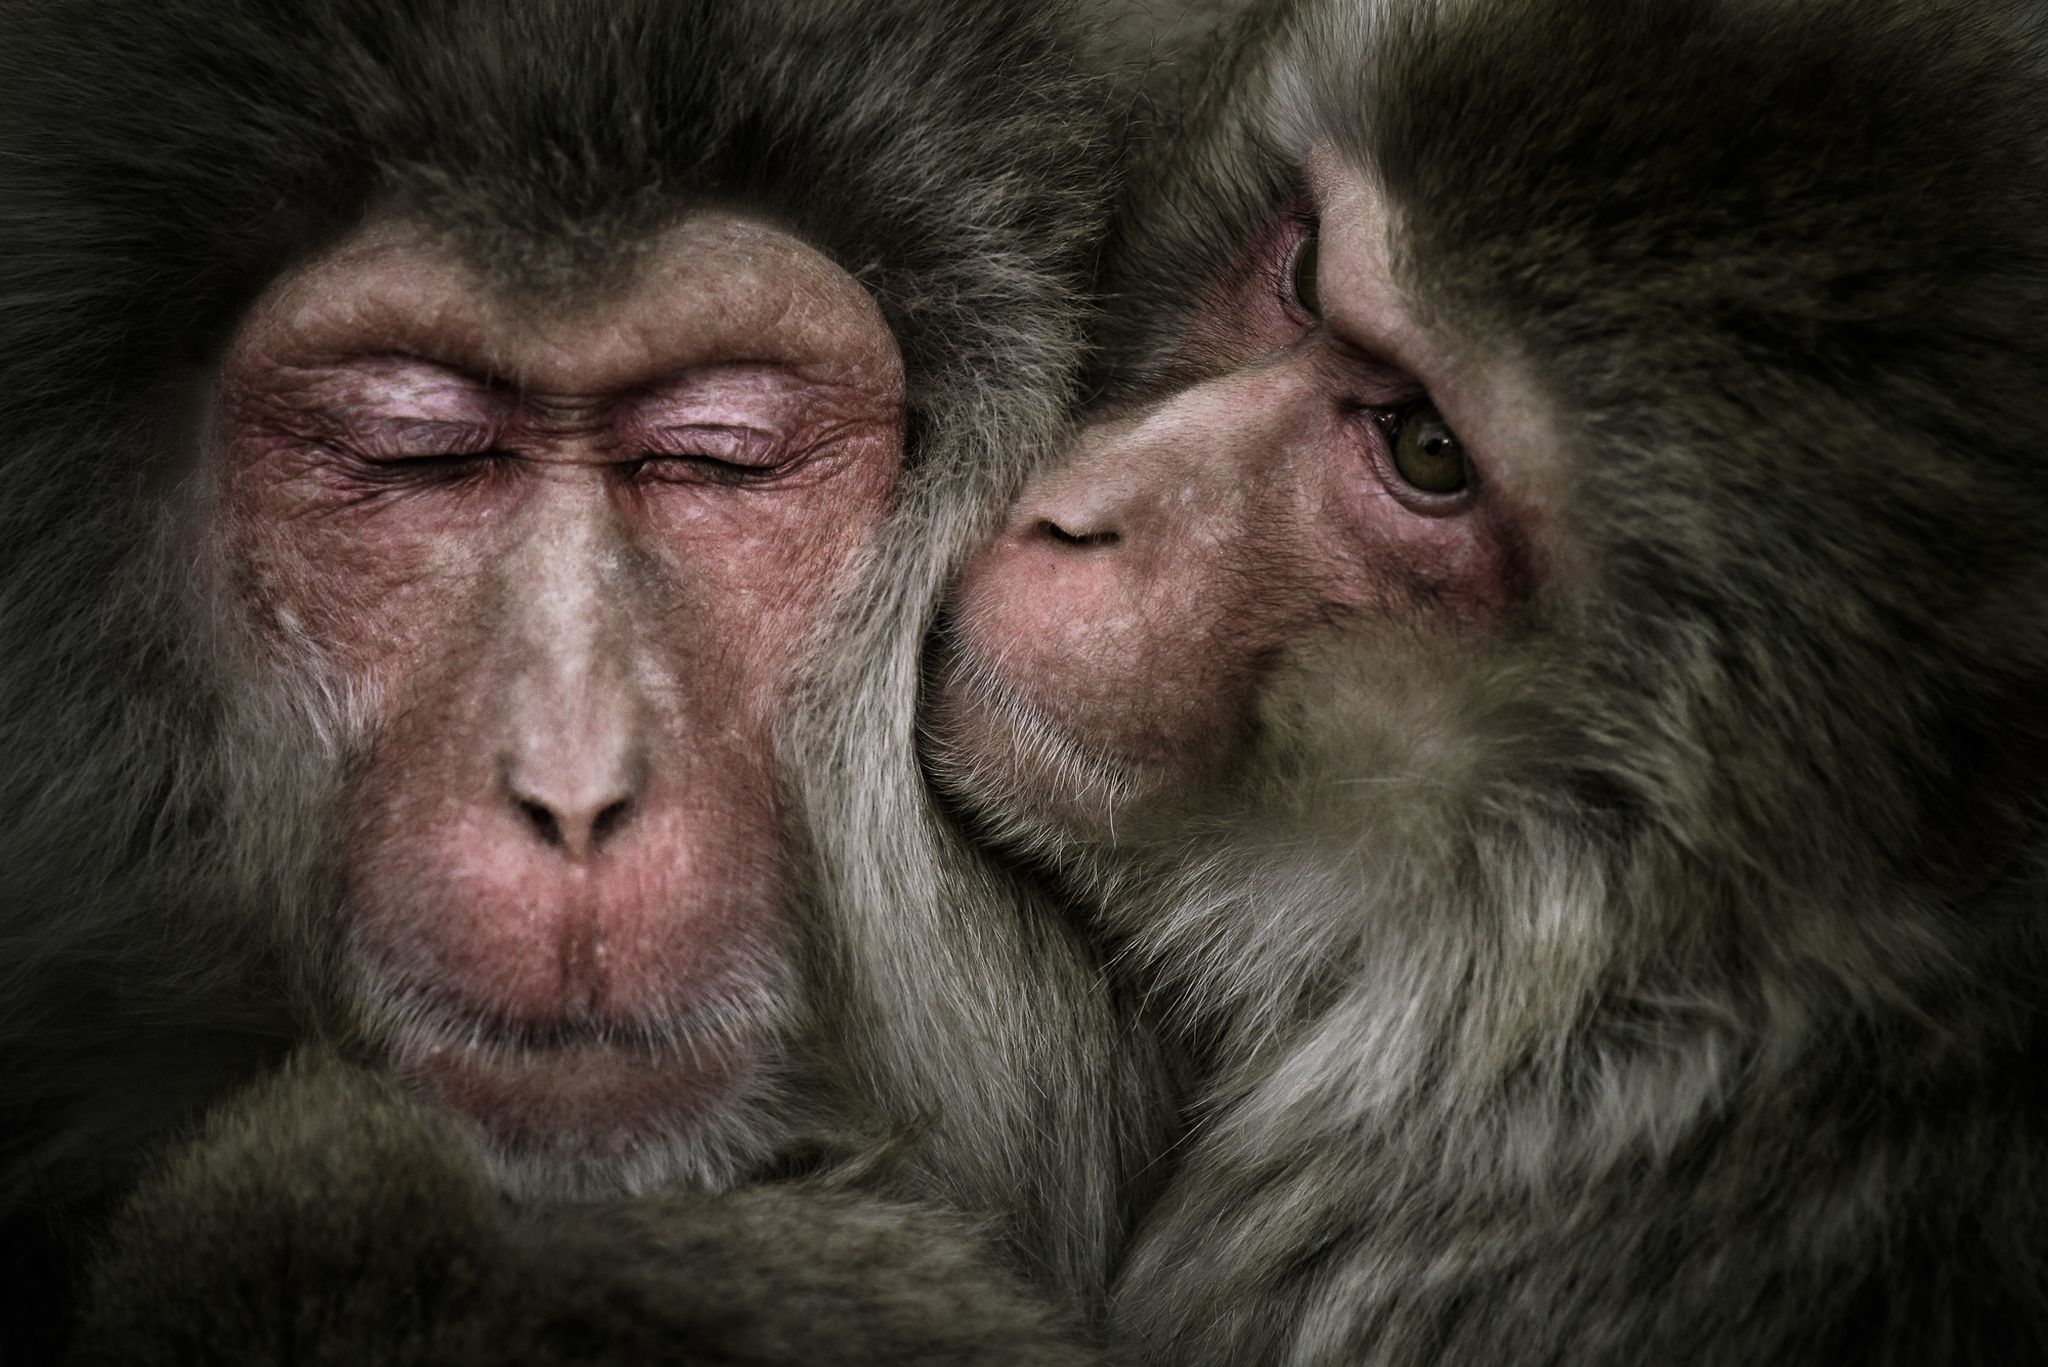 Macaques couple